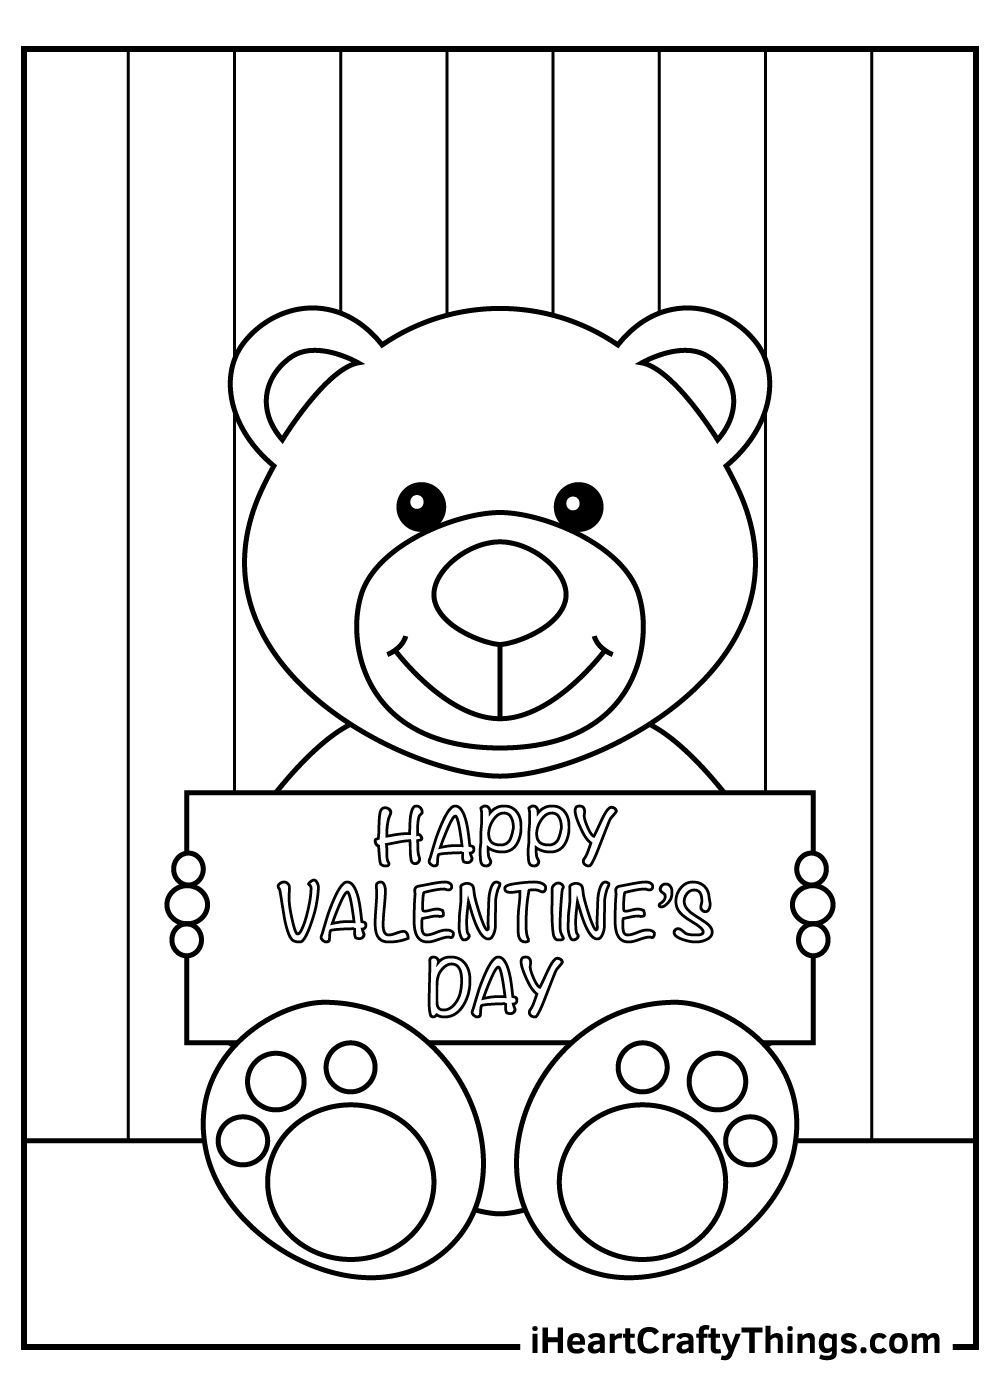 Happy valentine's day coloring pages teddy bear